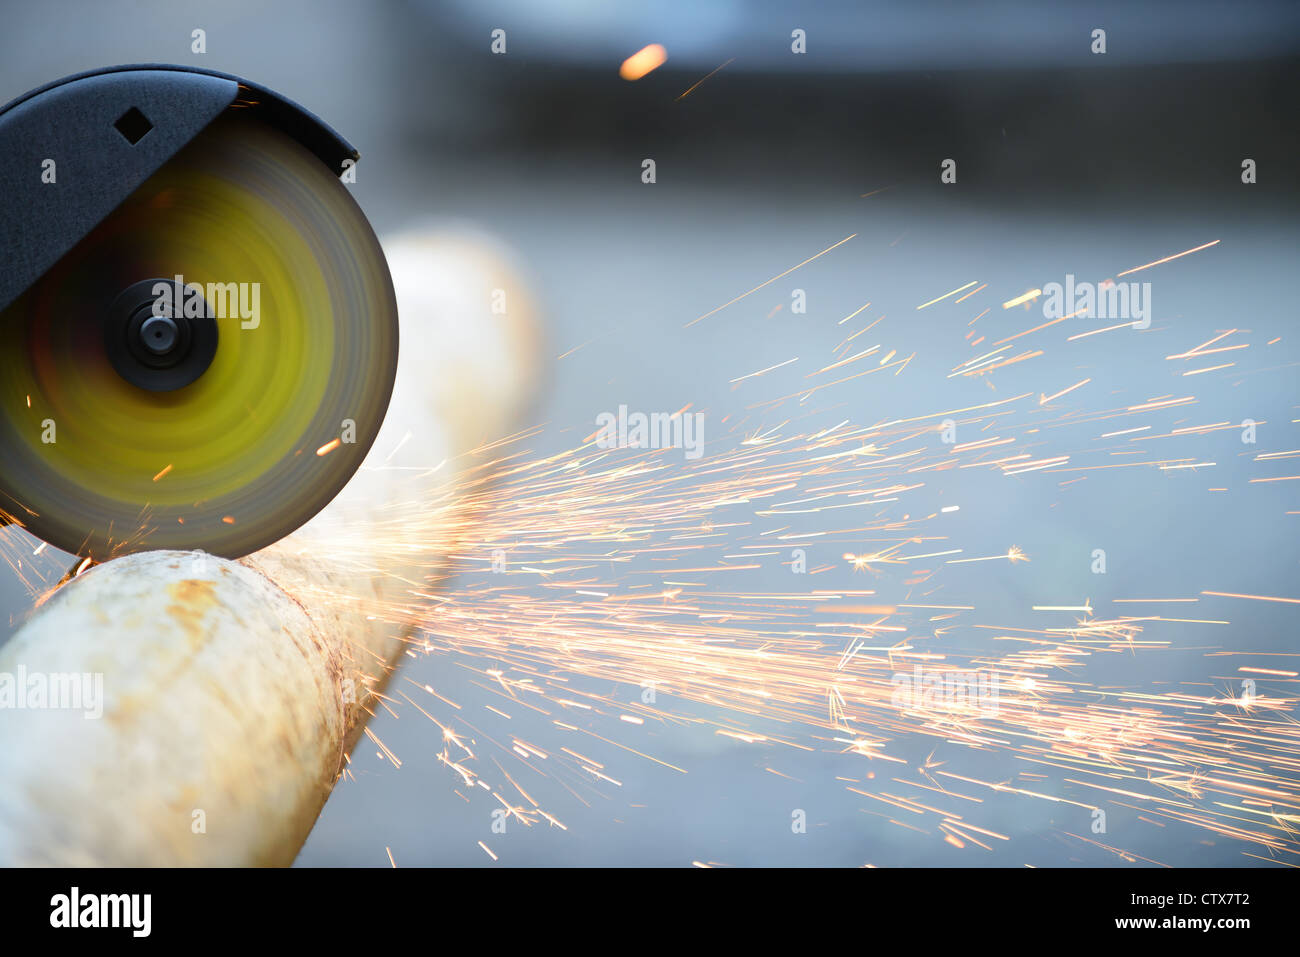 Cutting metal angle grinder, sparks from the disk. Photo close-up - Stock Image